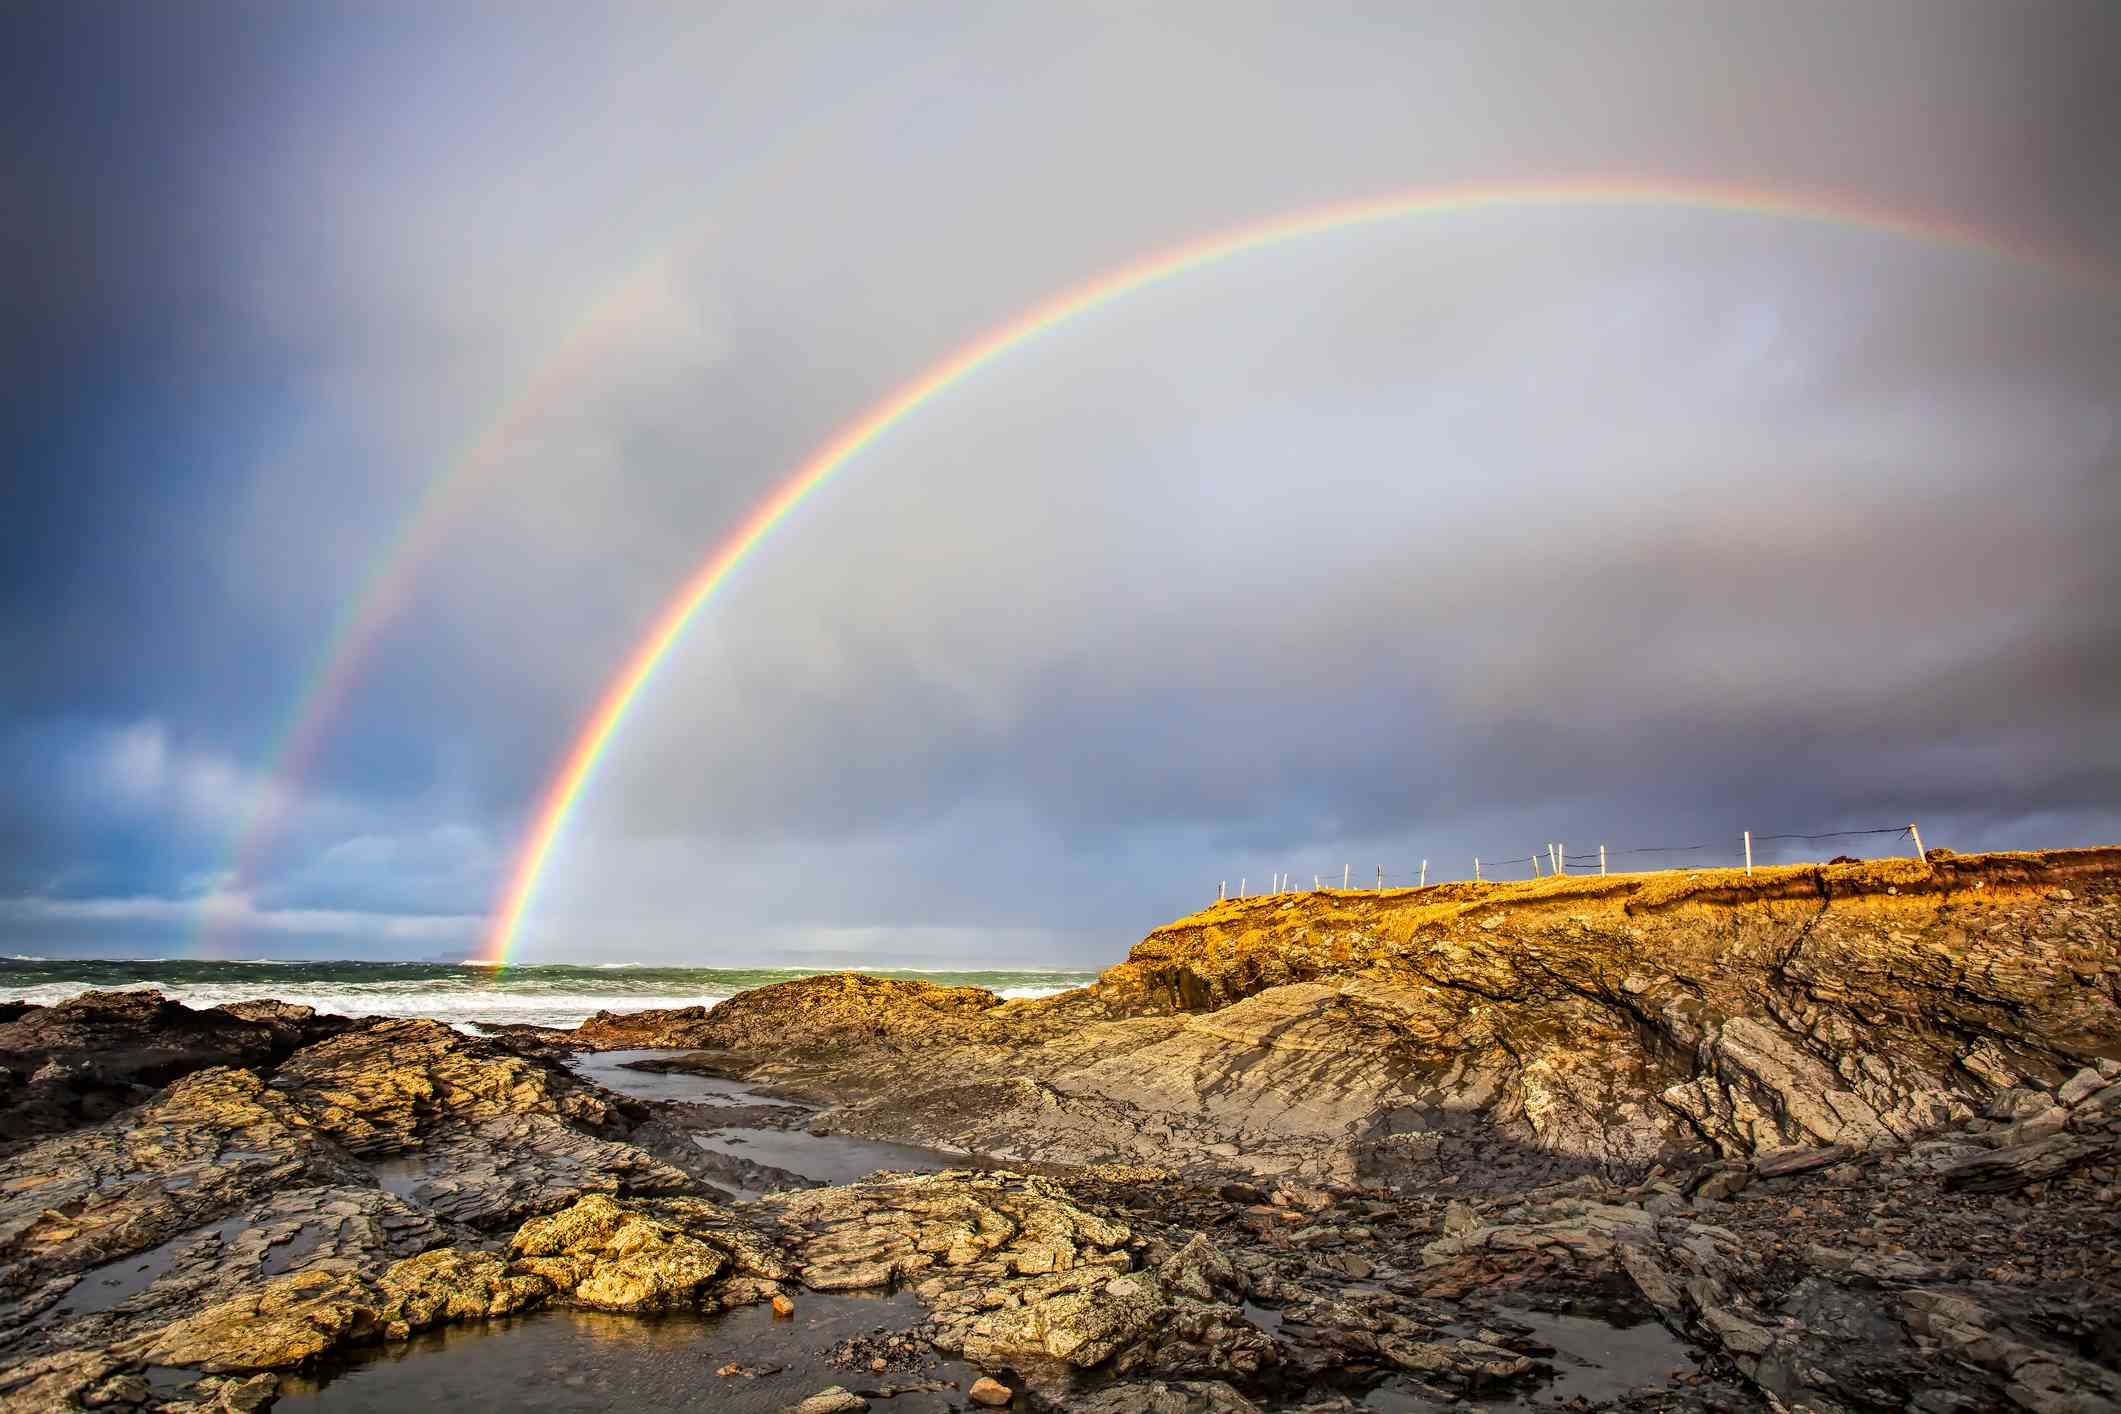 Double rainbow over the Cliffs of Moher